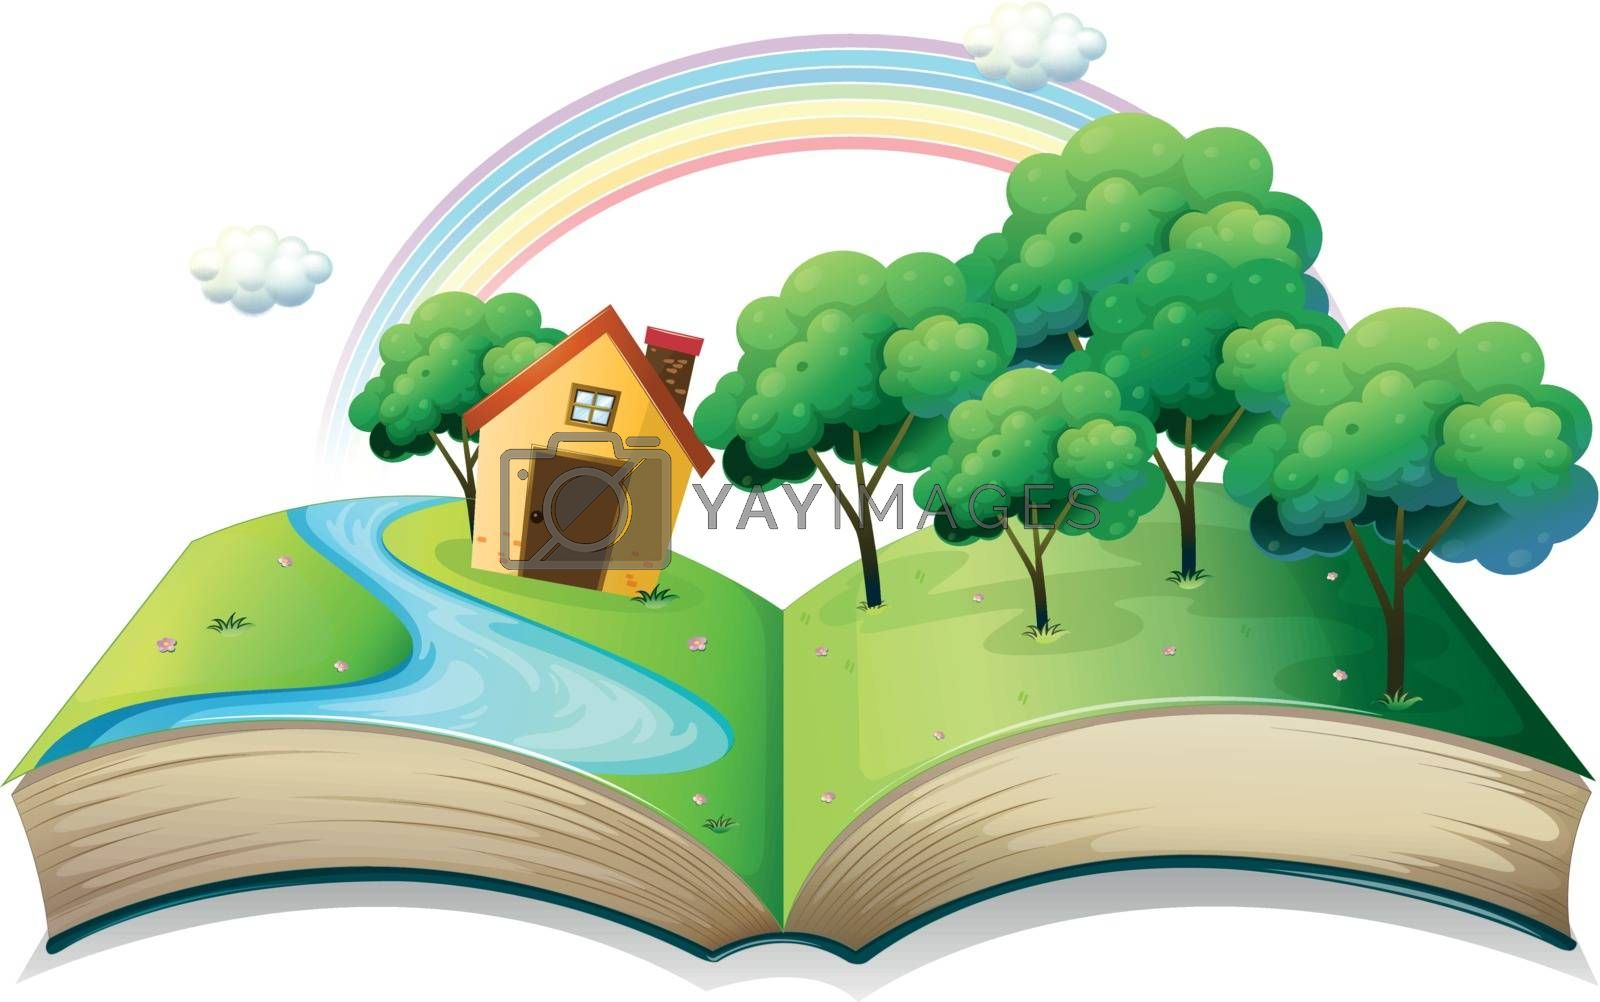 Illustration of a book with a story of a house at the forest on a white background